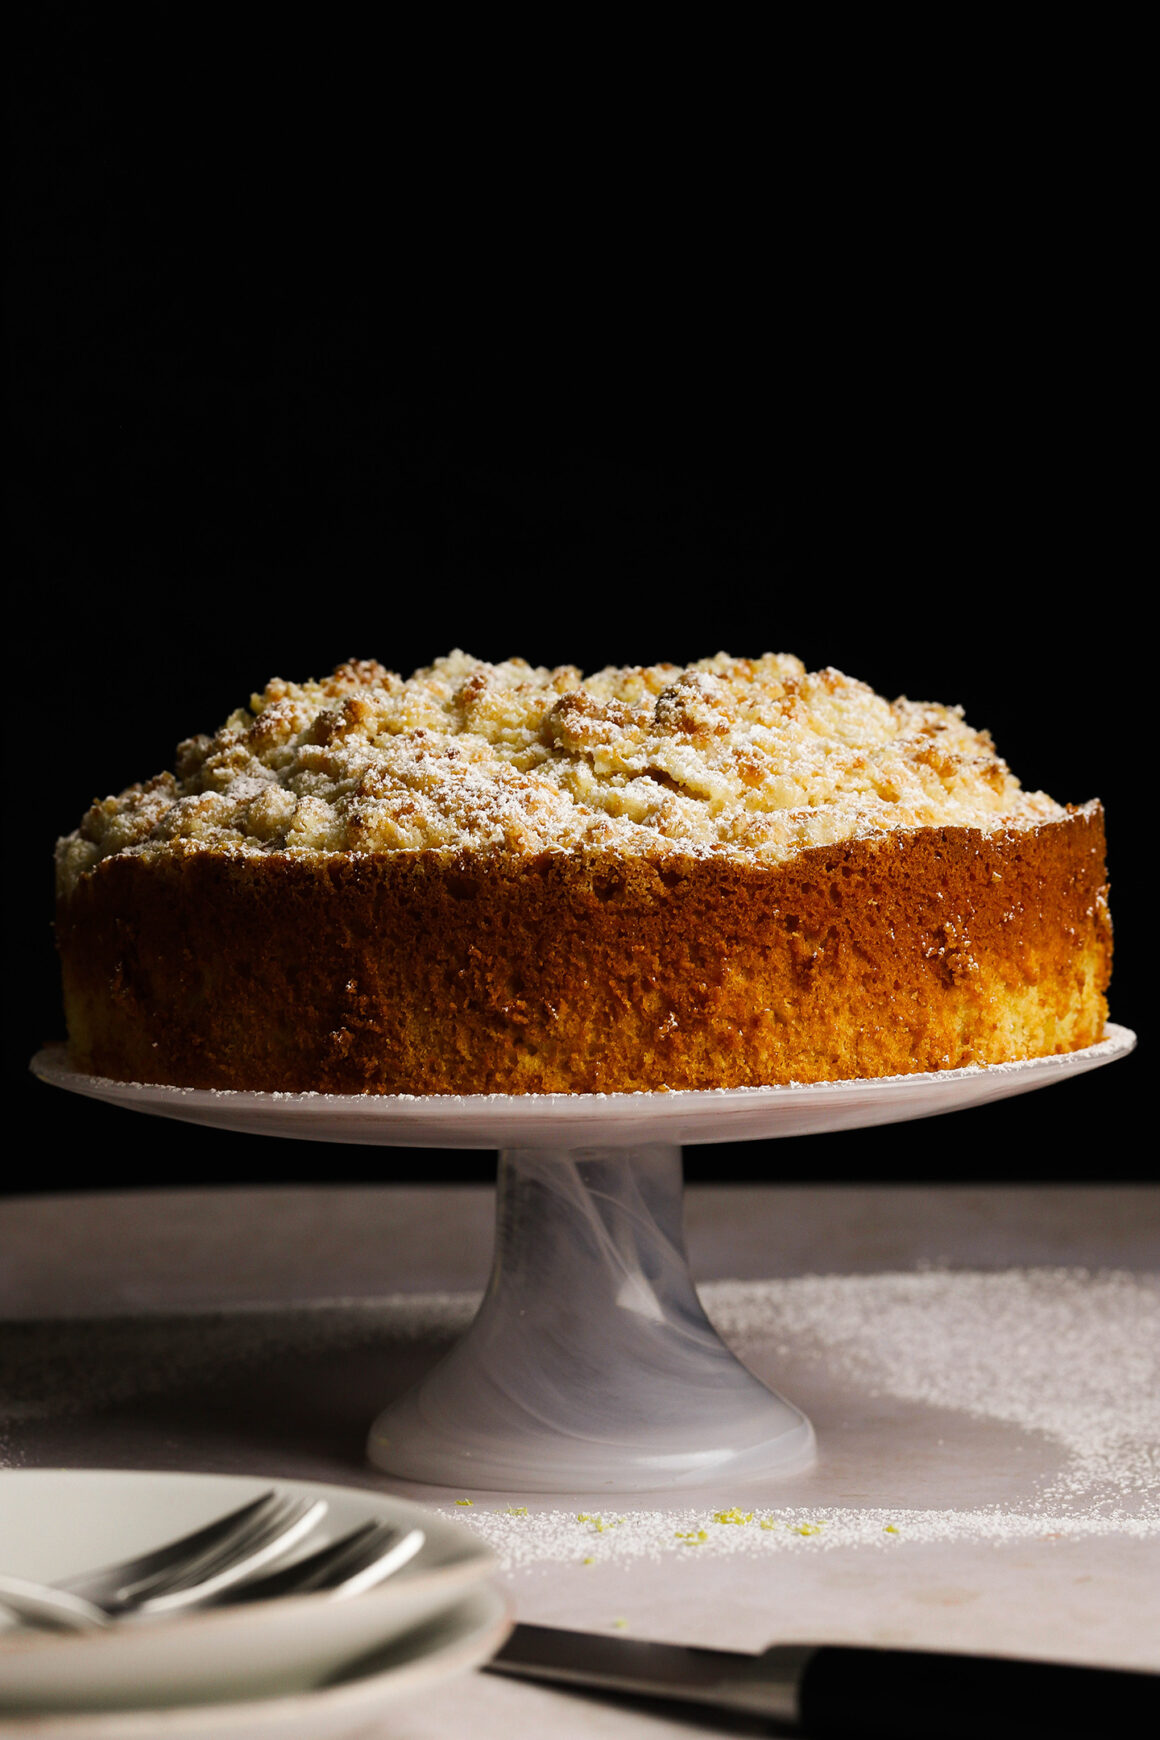 lemon crumble cake on cake stand